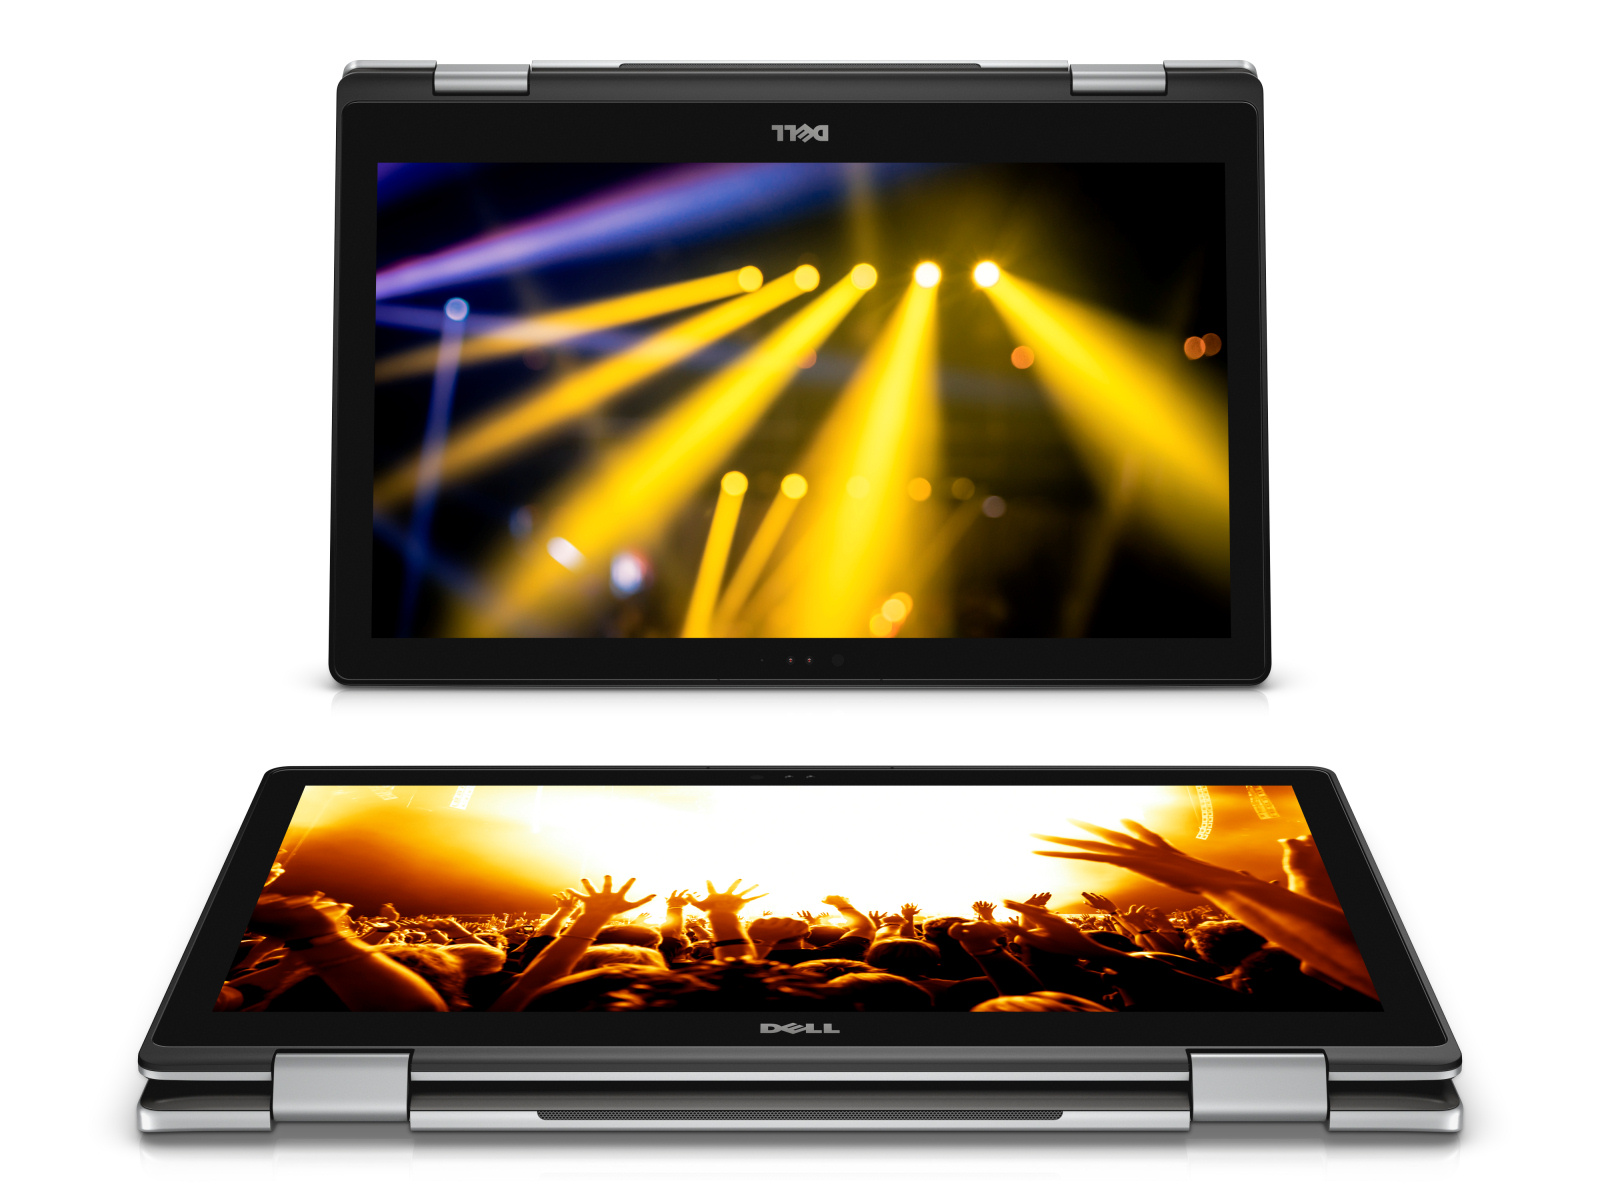 Two Dell Inspiron 15 7000 Series (Model 7569) 2-in-1 Touch notebook computer, codename Starlord, shown in tablet mode.